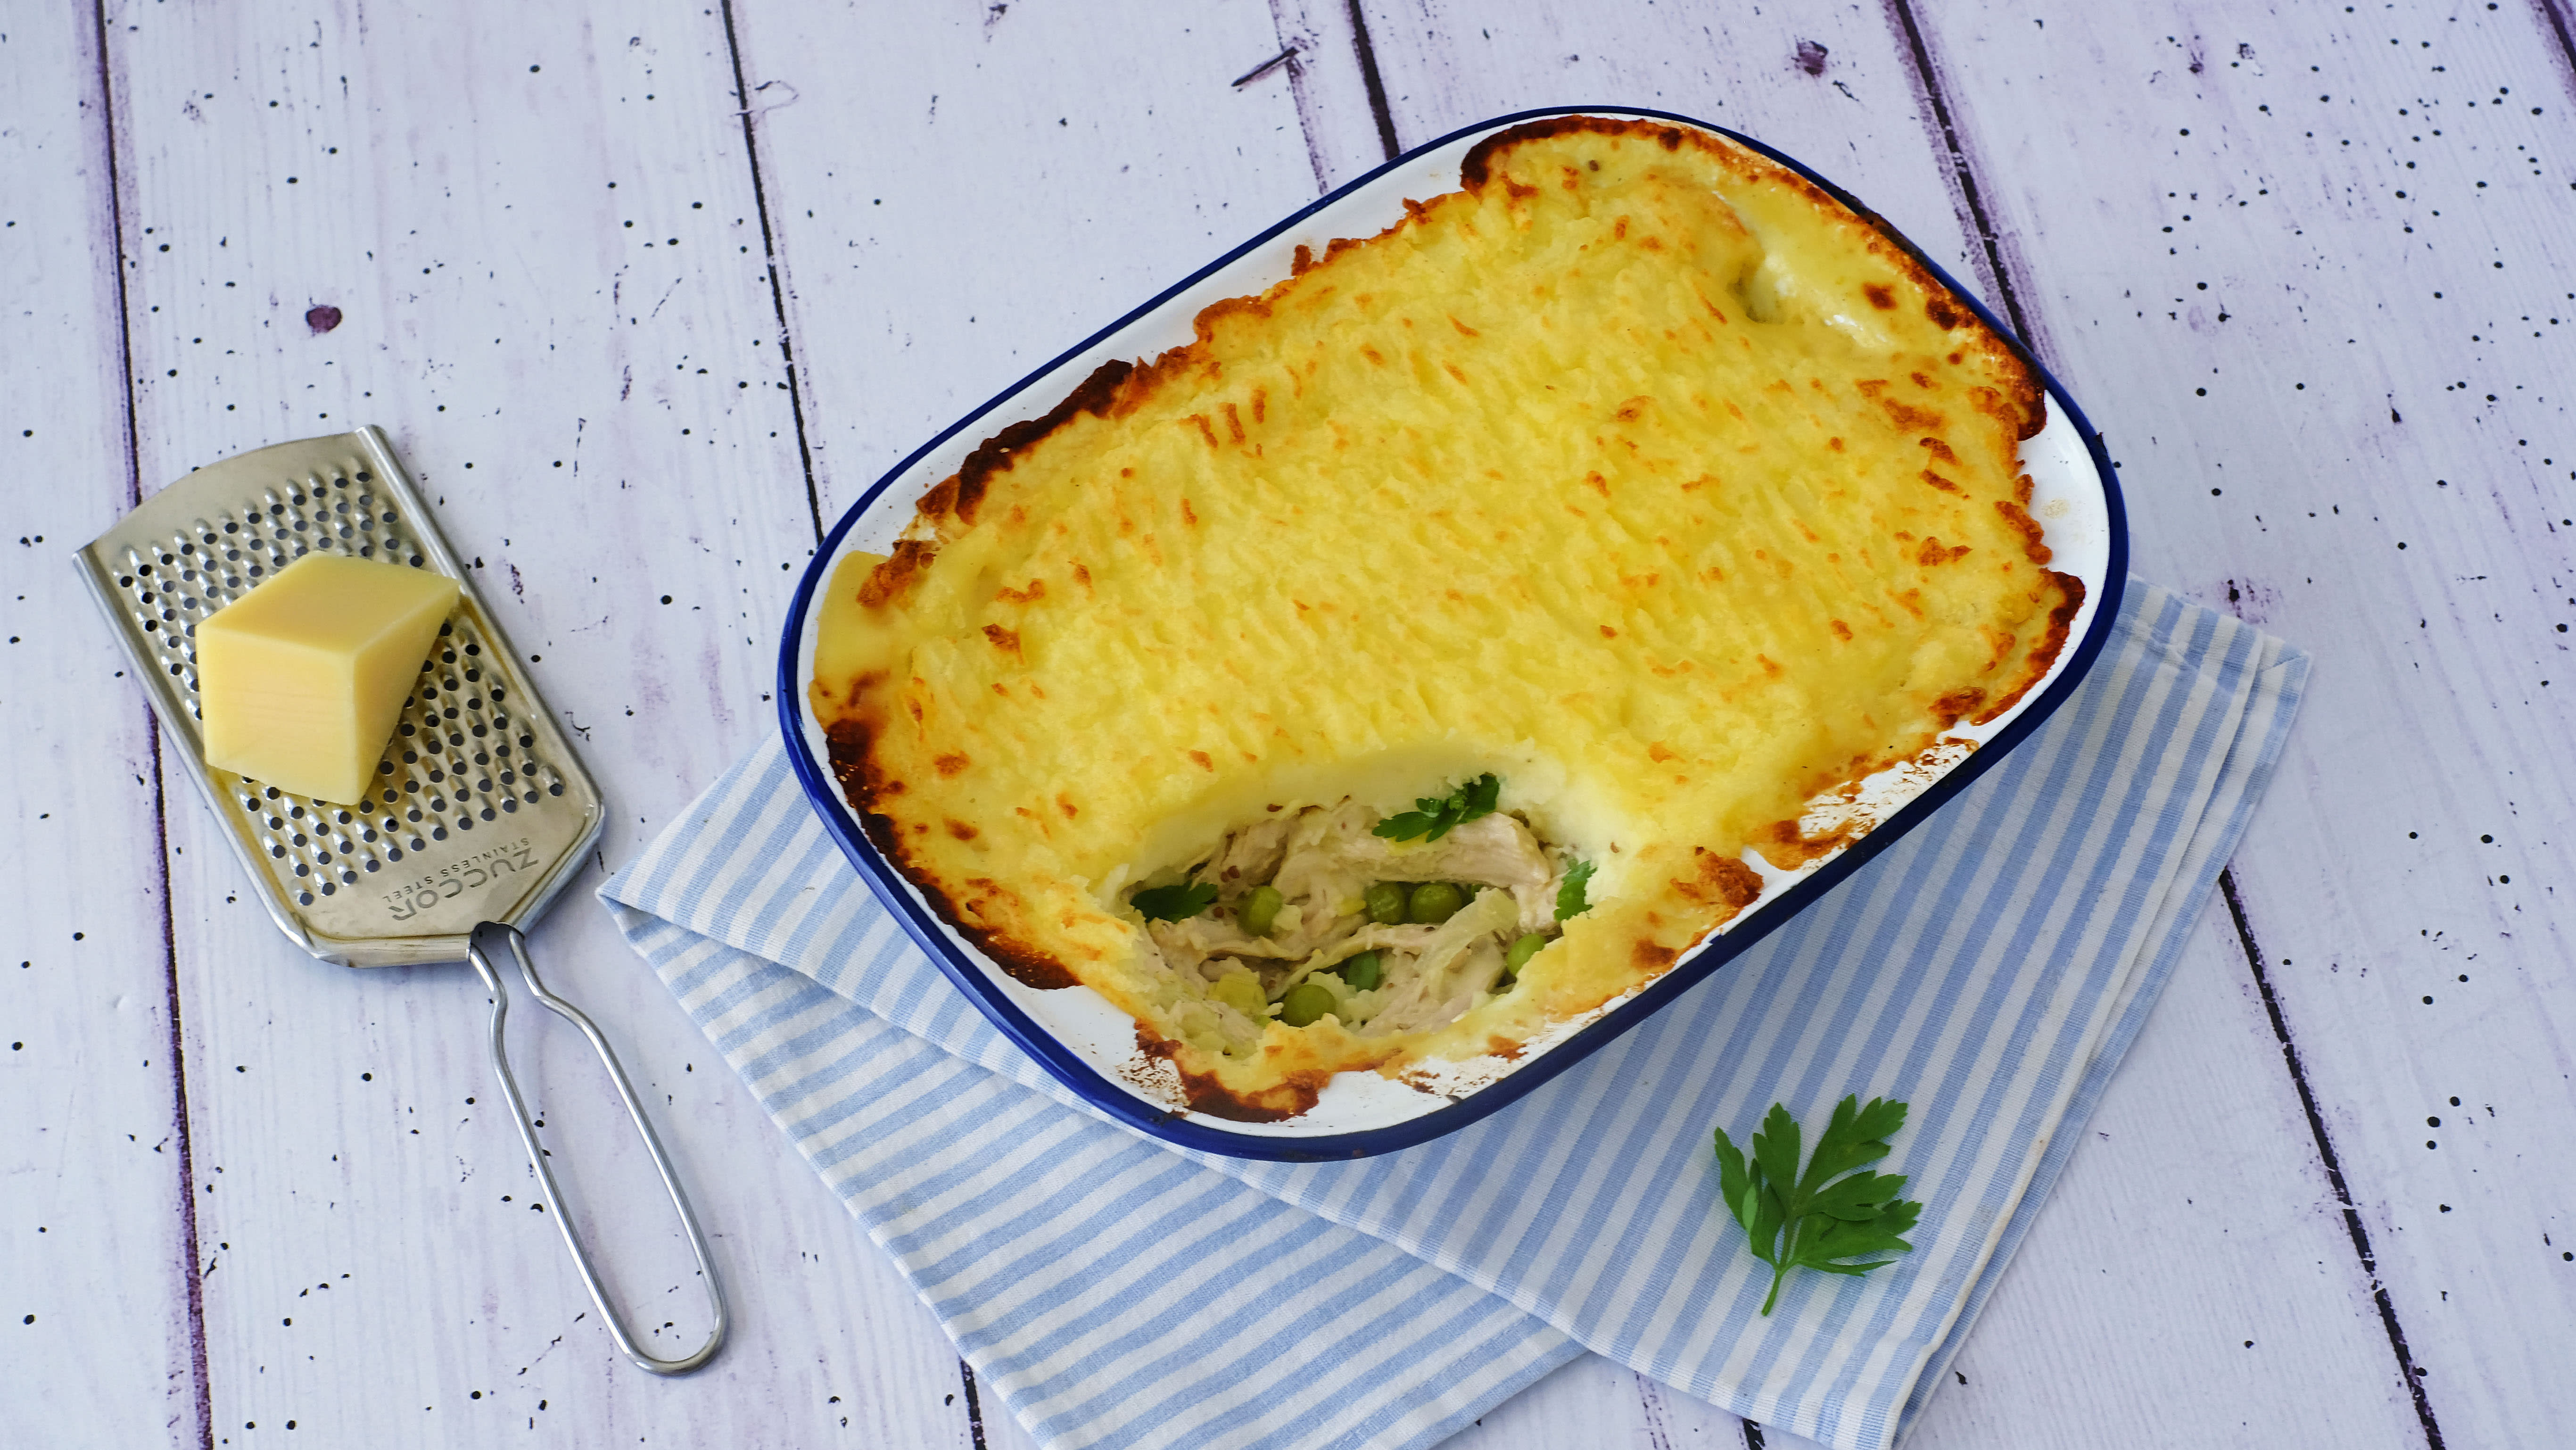 Creamy Chicken and Leek Pie with Peas and Parmesan